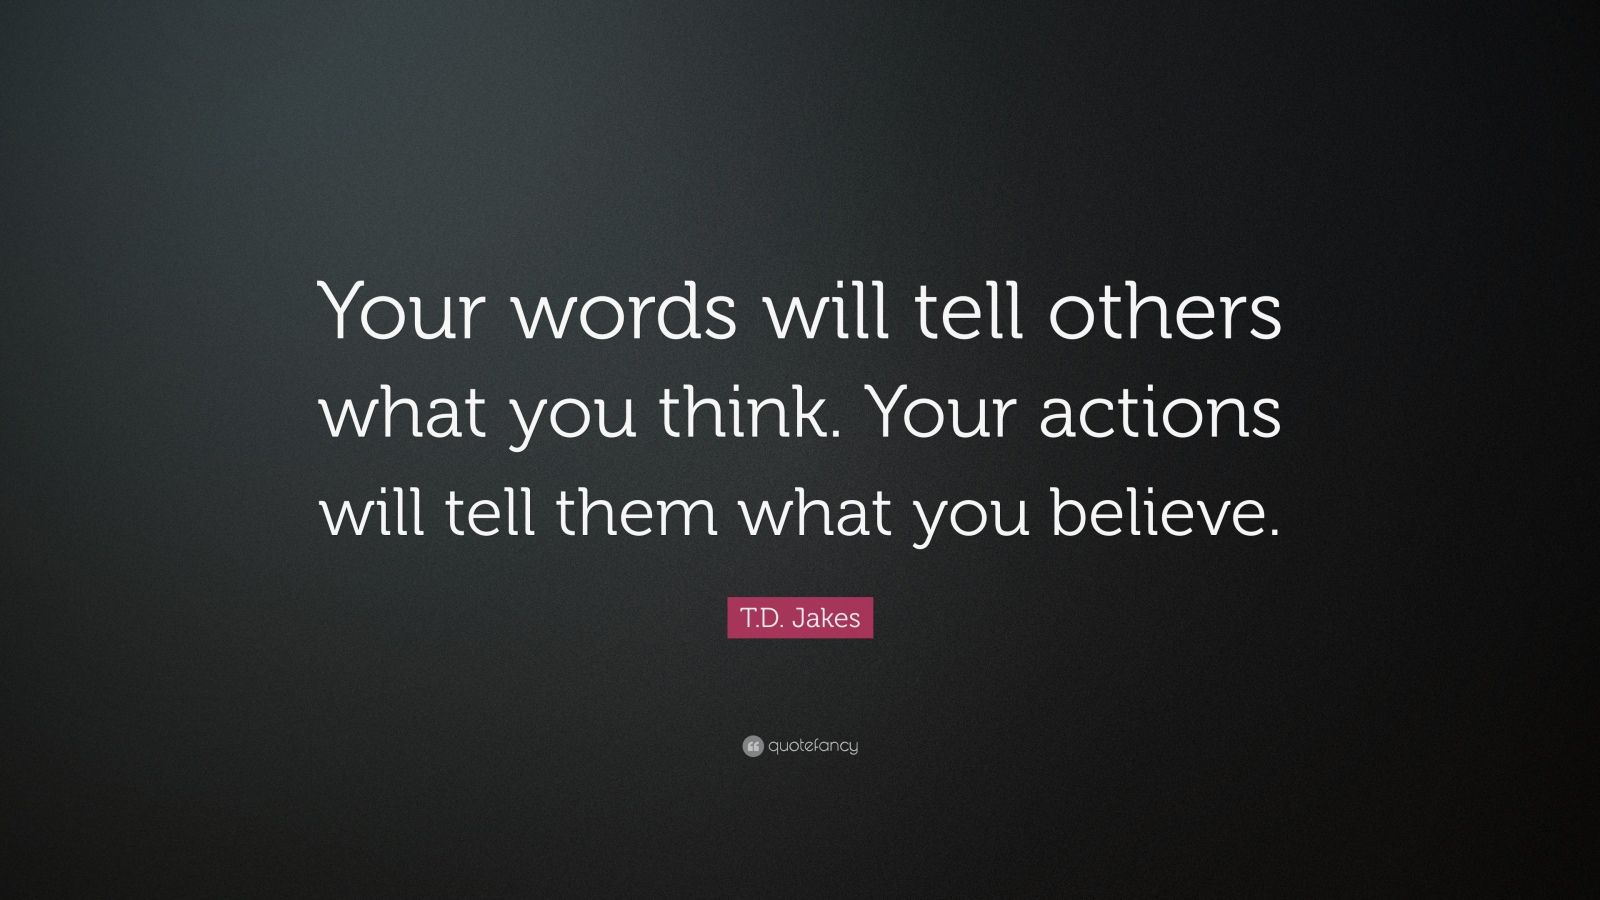 William Shakespeare Love Quotes Wallpaper T D Jakes Quote Your Words Will Tell Others What You